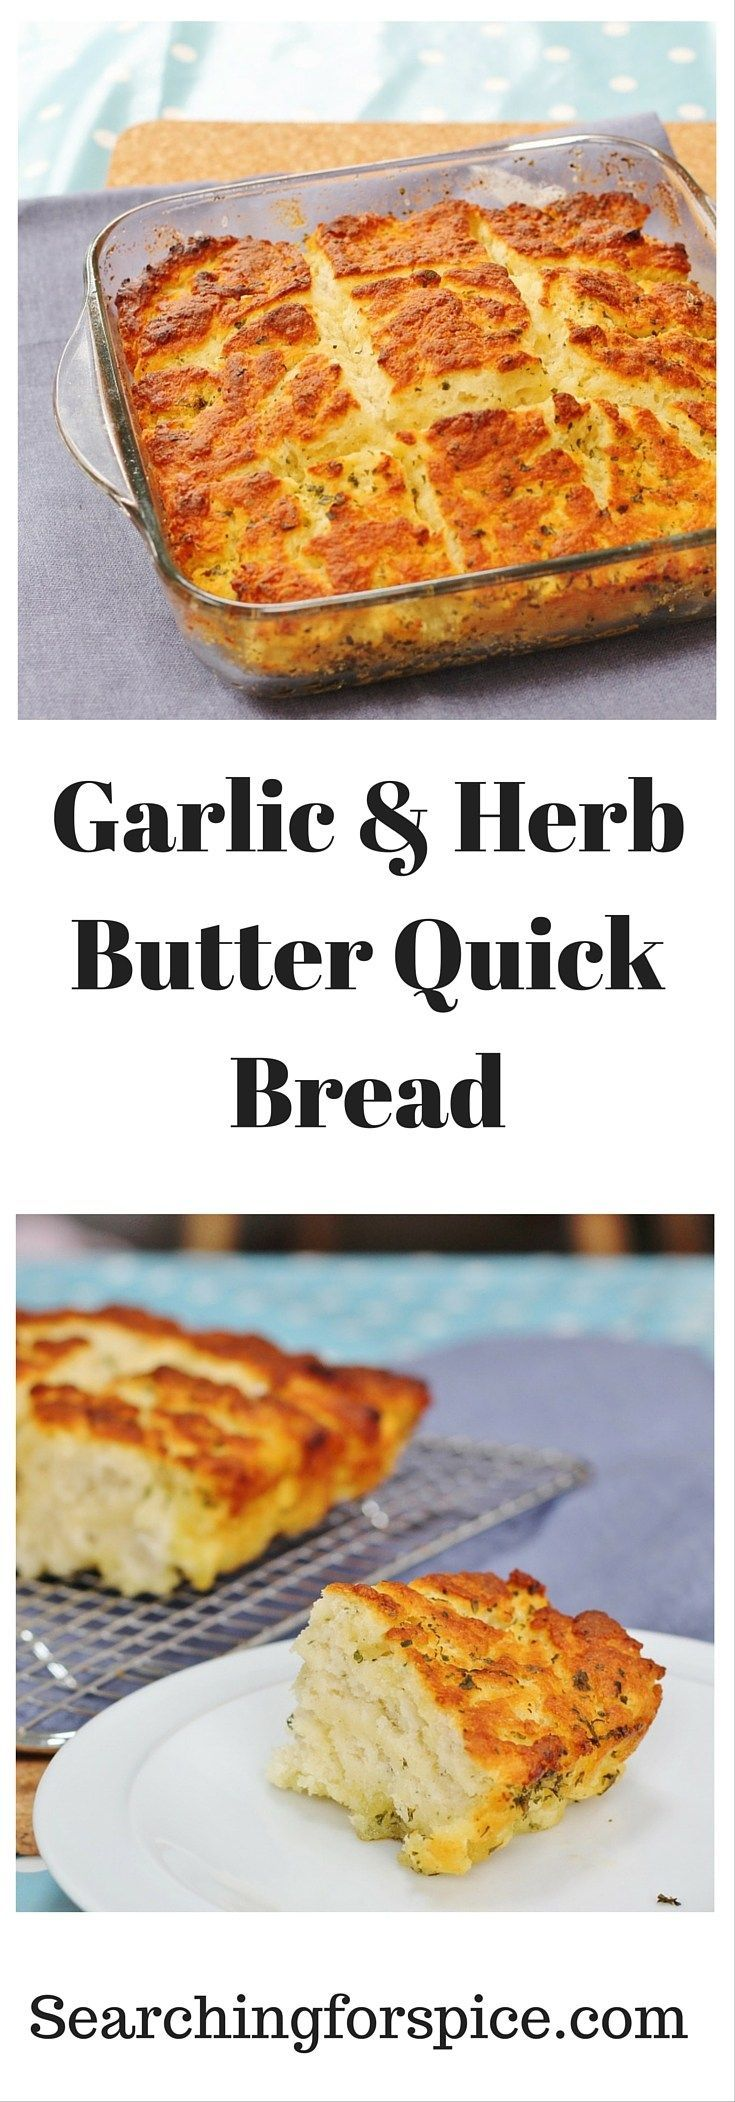 Garlic and herb butter quick bread.  This easy quick bread recipes makes a perfect side to a soup or salad.